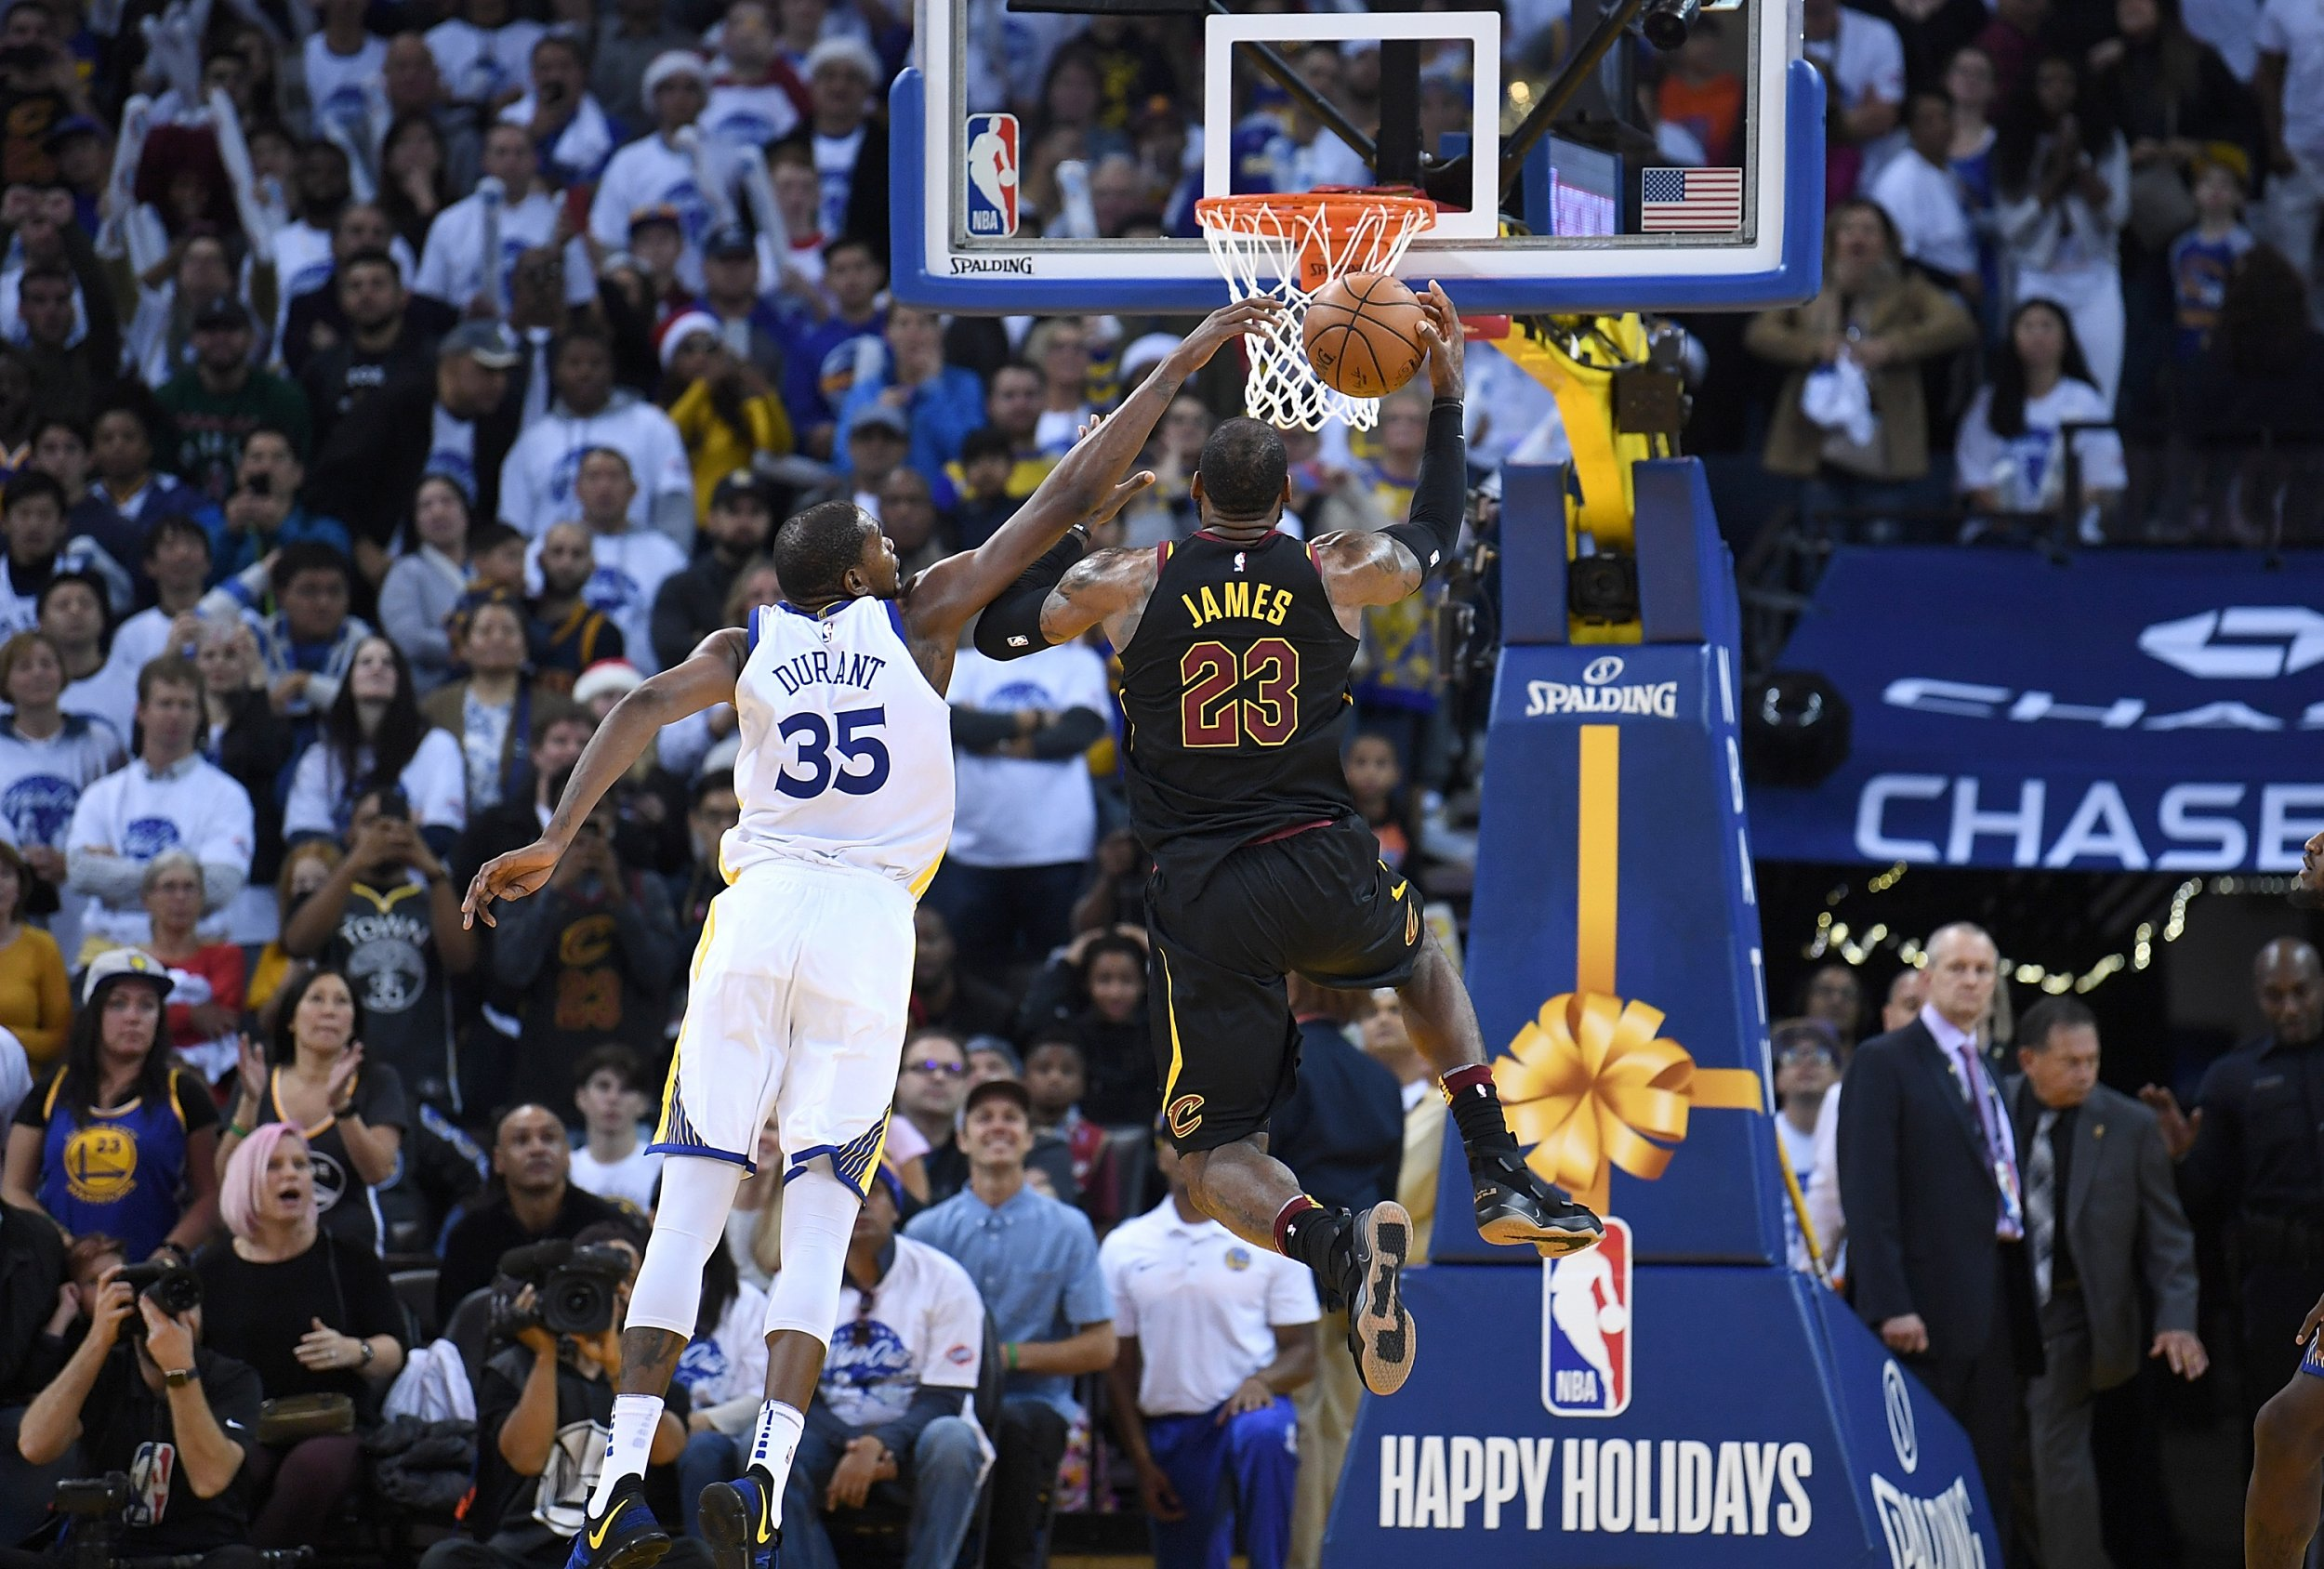 b333b246e Kevin Durant of the Golden State Warriors defends the shot of LeBron James  of the Cleveland Cavaliers late in the fourth quarter of an NBA basketball  game ...